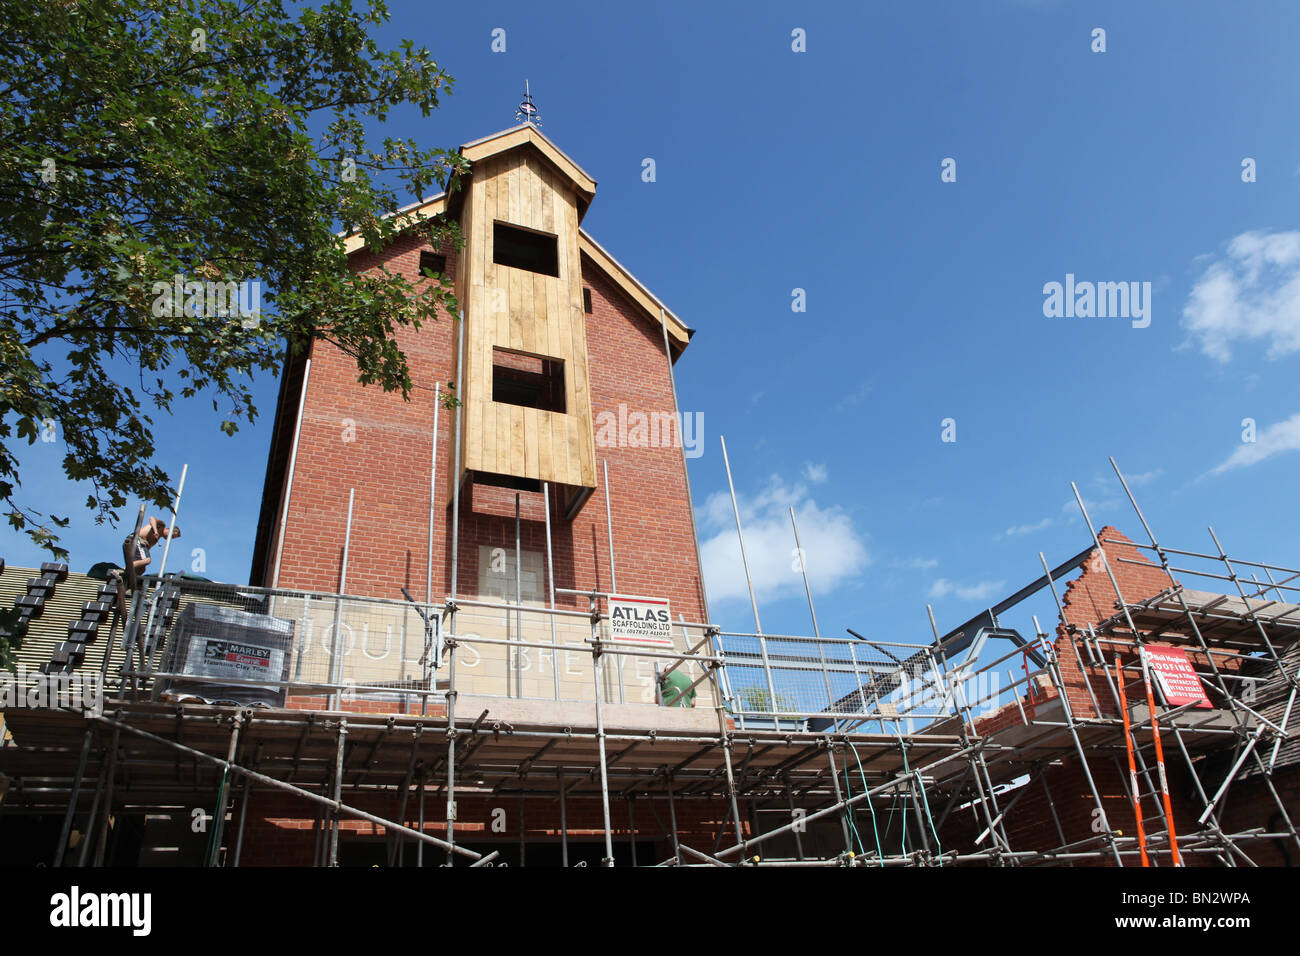 The new Joules brewery being built in Market Drayton, Shropshire - Stock Image